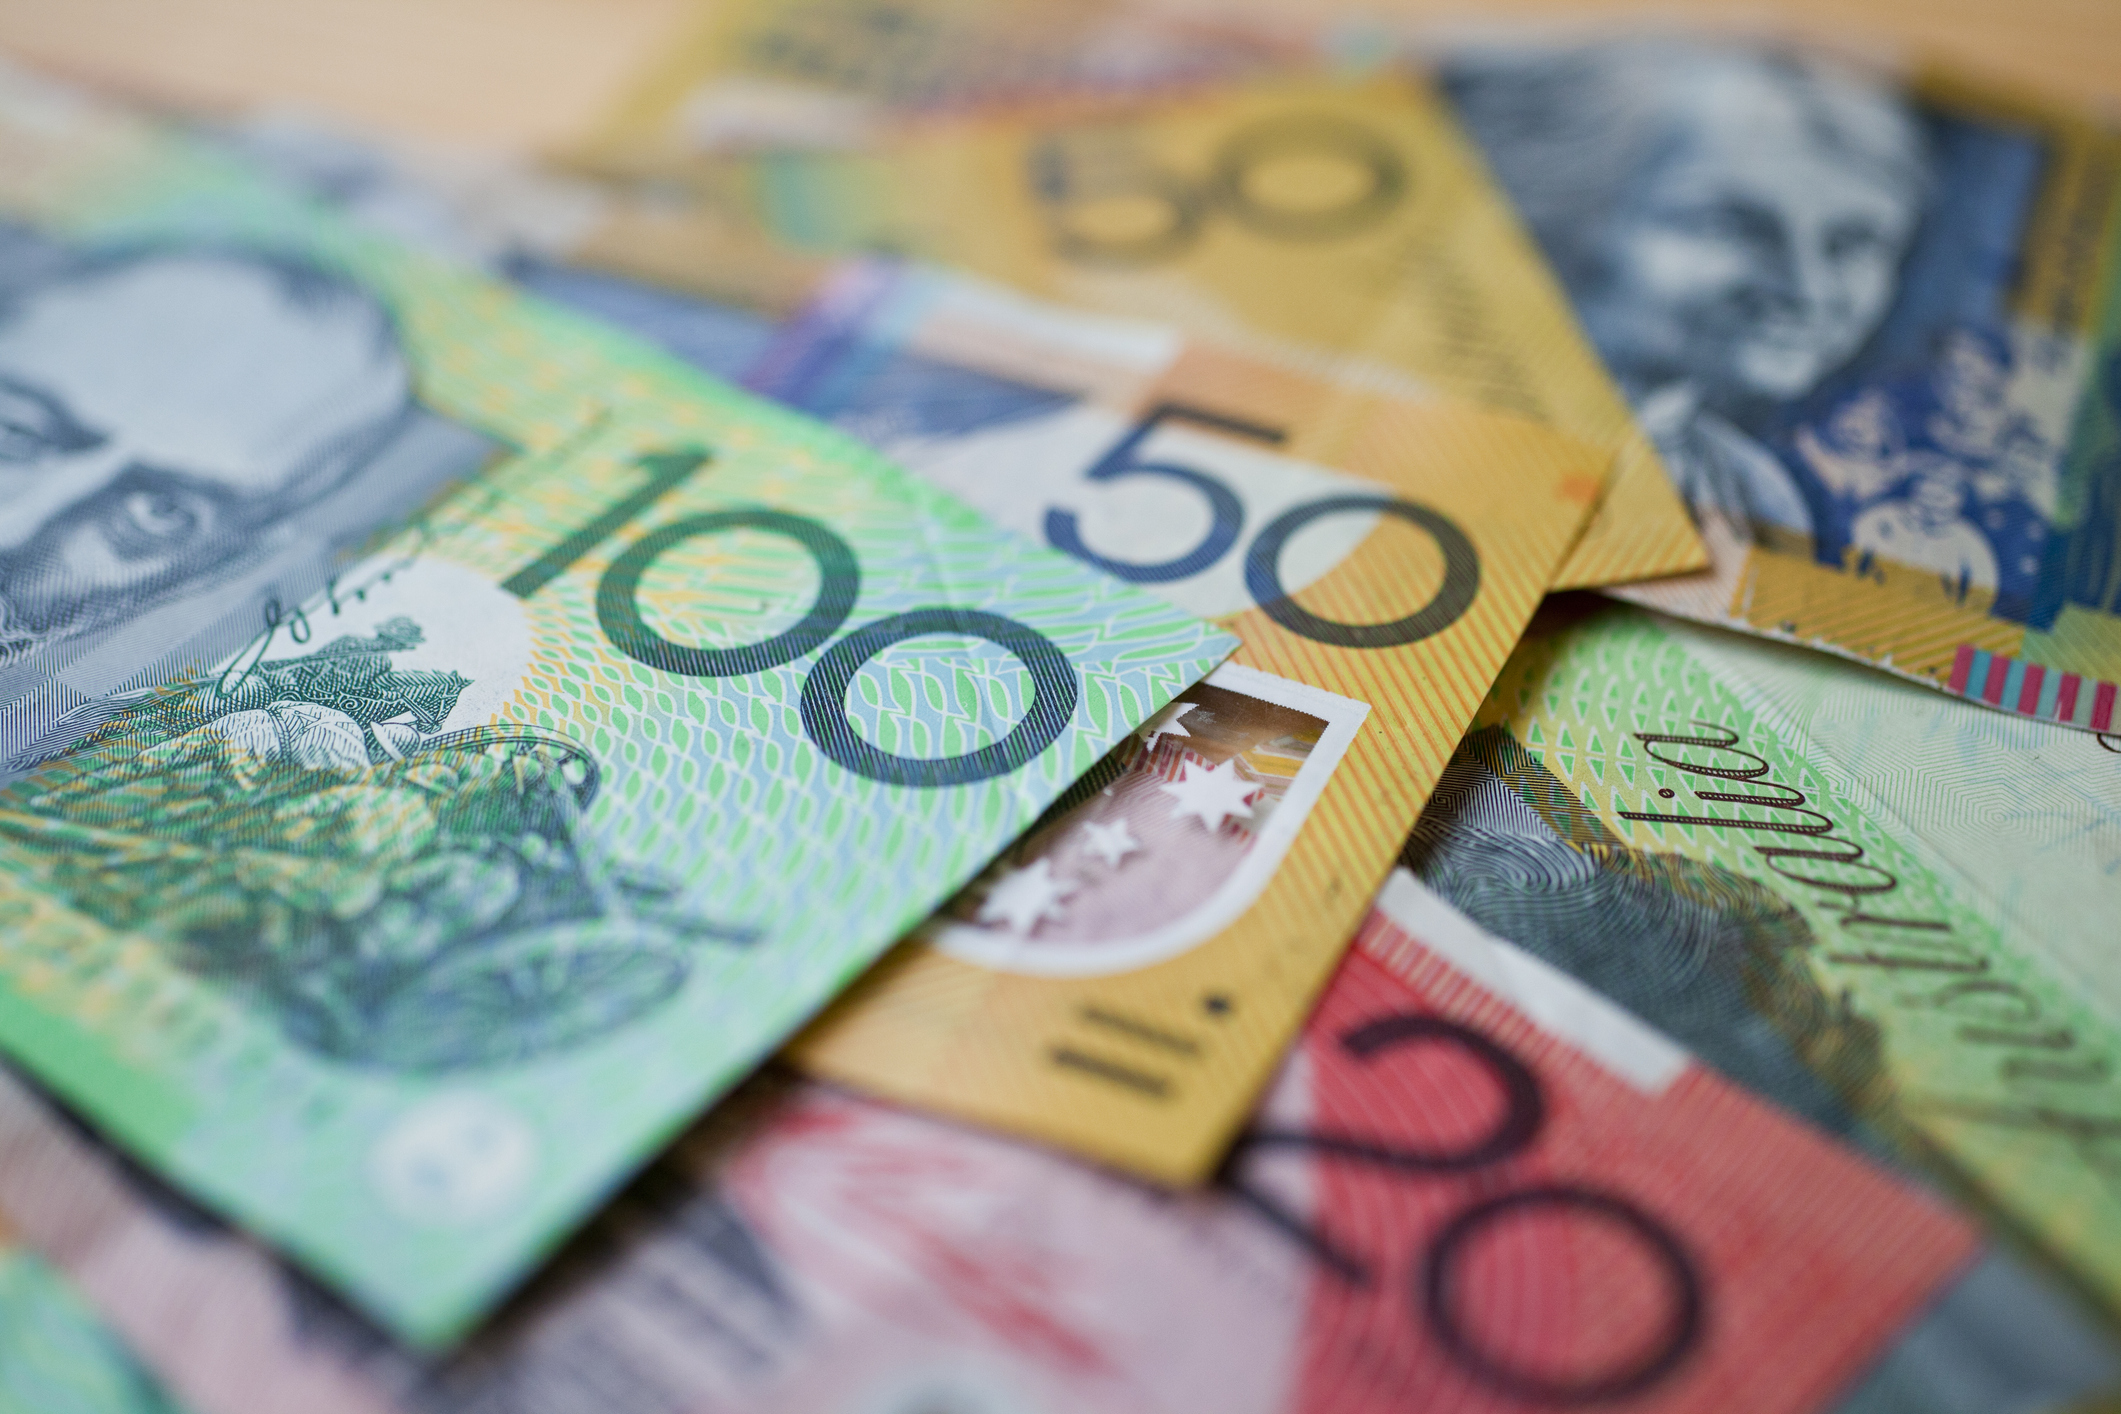 Aussie households save $200b during COVID